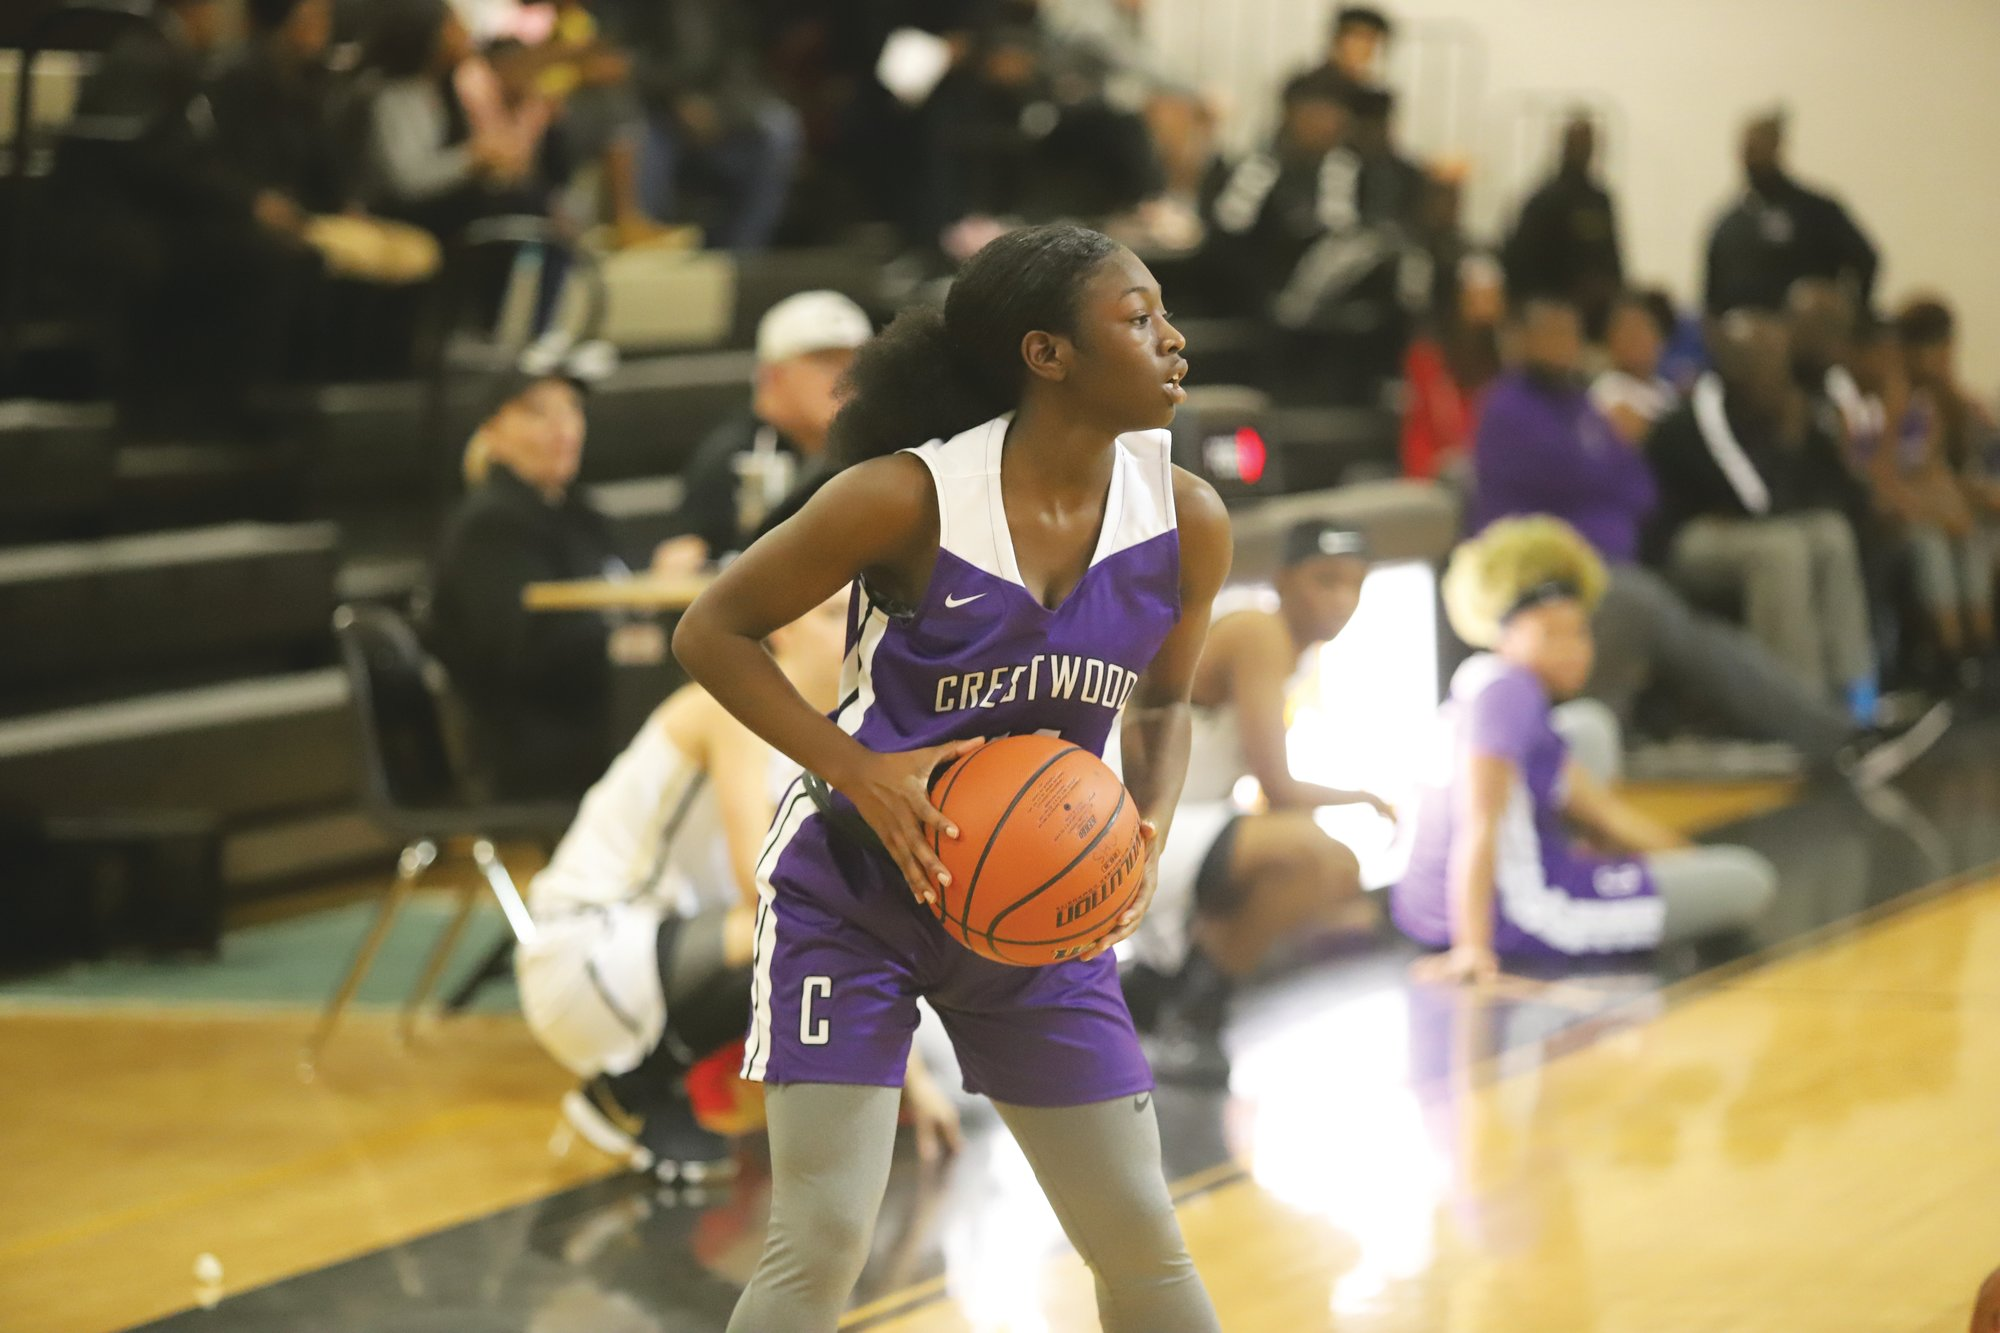 Crestwood guard Shania Davis led the Lady Knights with 12 points in their 44-40 loss to Orangeburg-Wilkinson on Tuesday at The Castle.